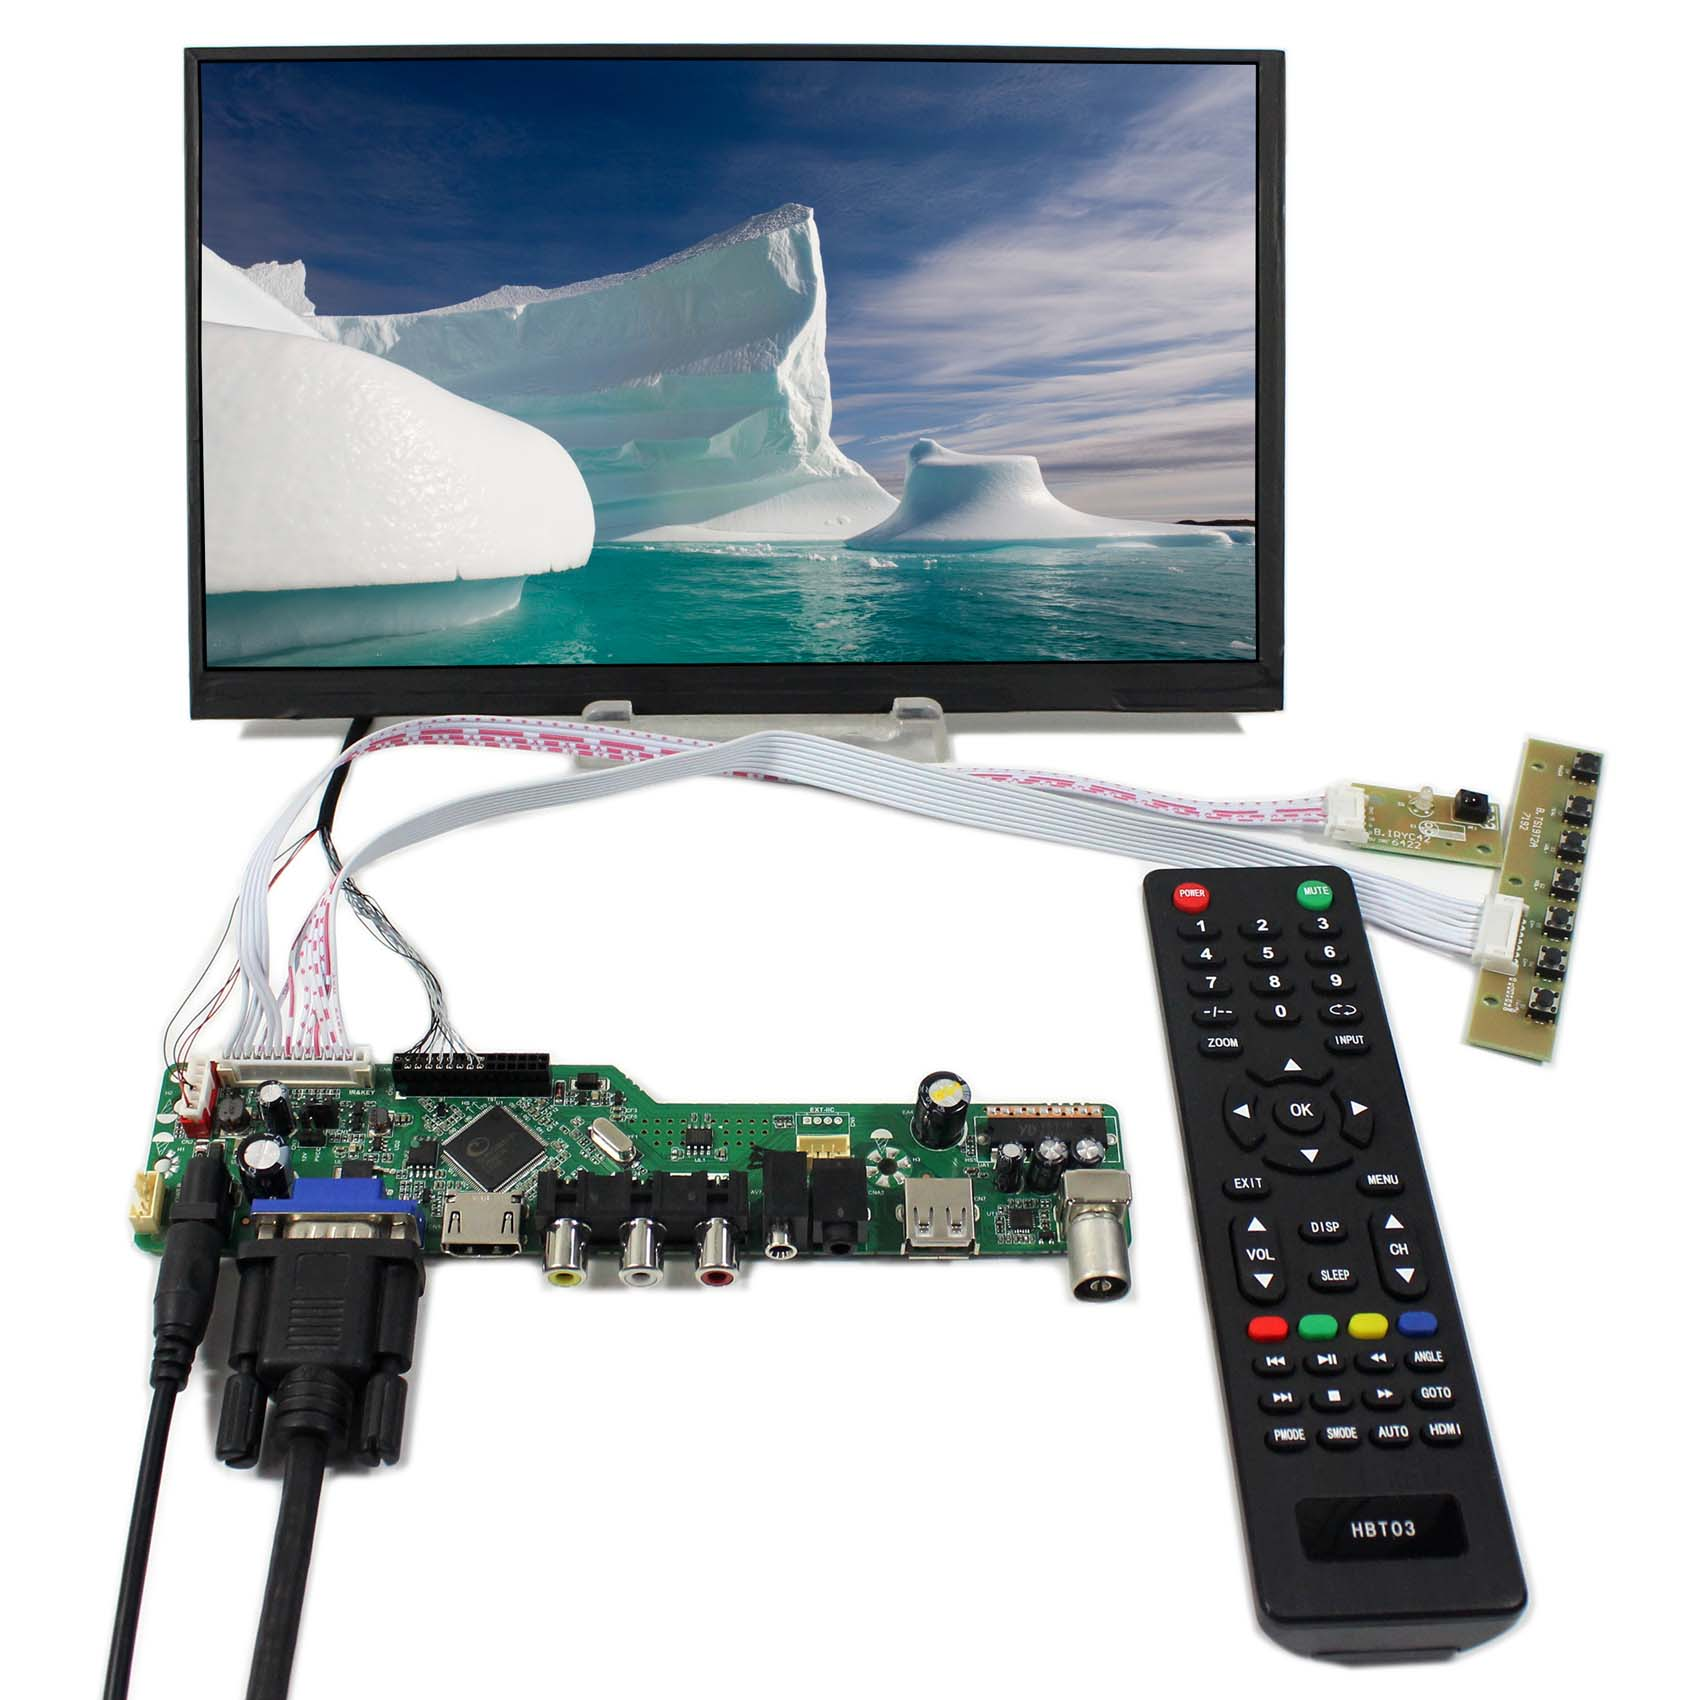 TV+HDMI+VGA+AV+USB+AUDIO LCD Controller Board With 10.6inch 1366X768 LTL106AL01 IPS LCD Screen hdmi vga av audio usb control board 10 6inch ltl106al01 1366 768 ips lcd panel screen model lcd for raspberry pi